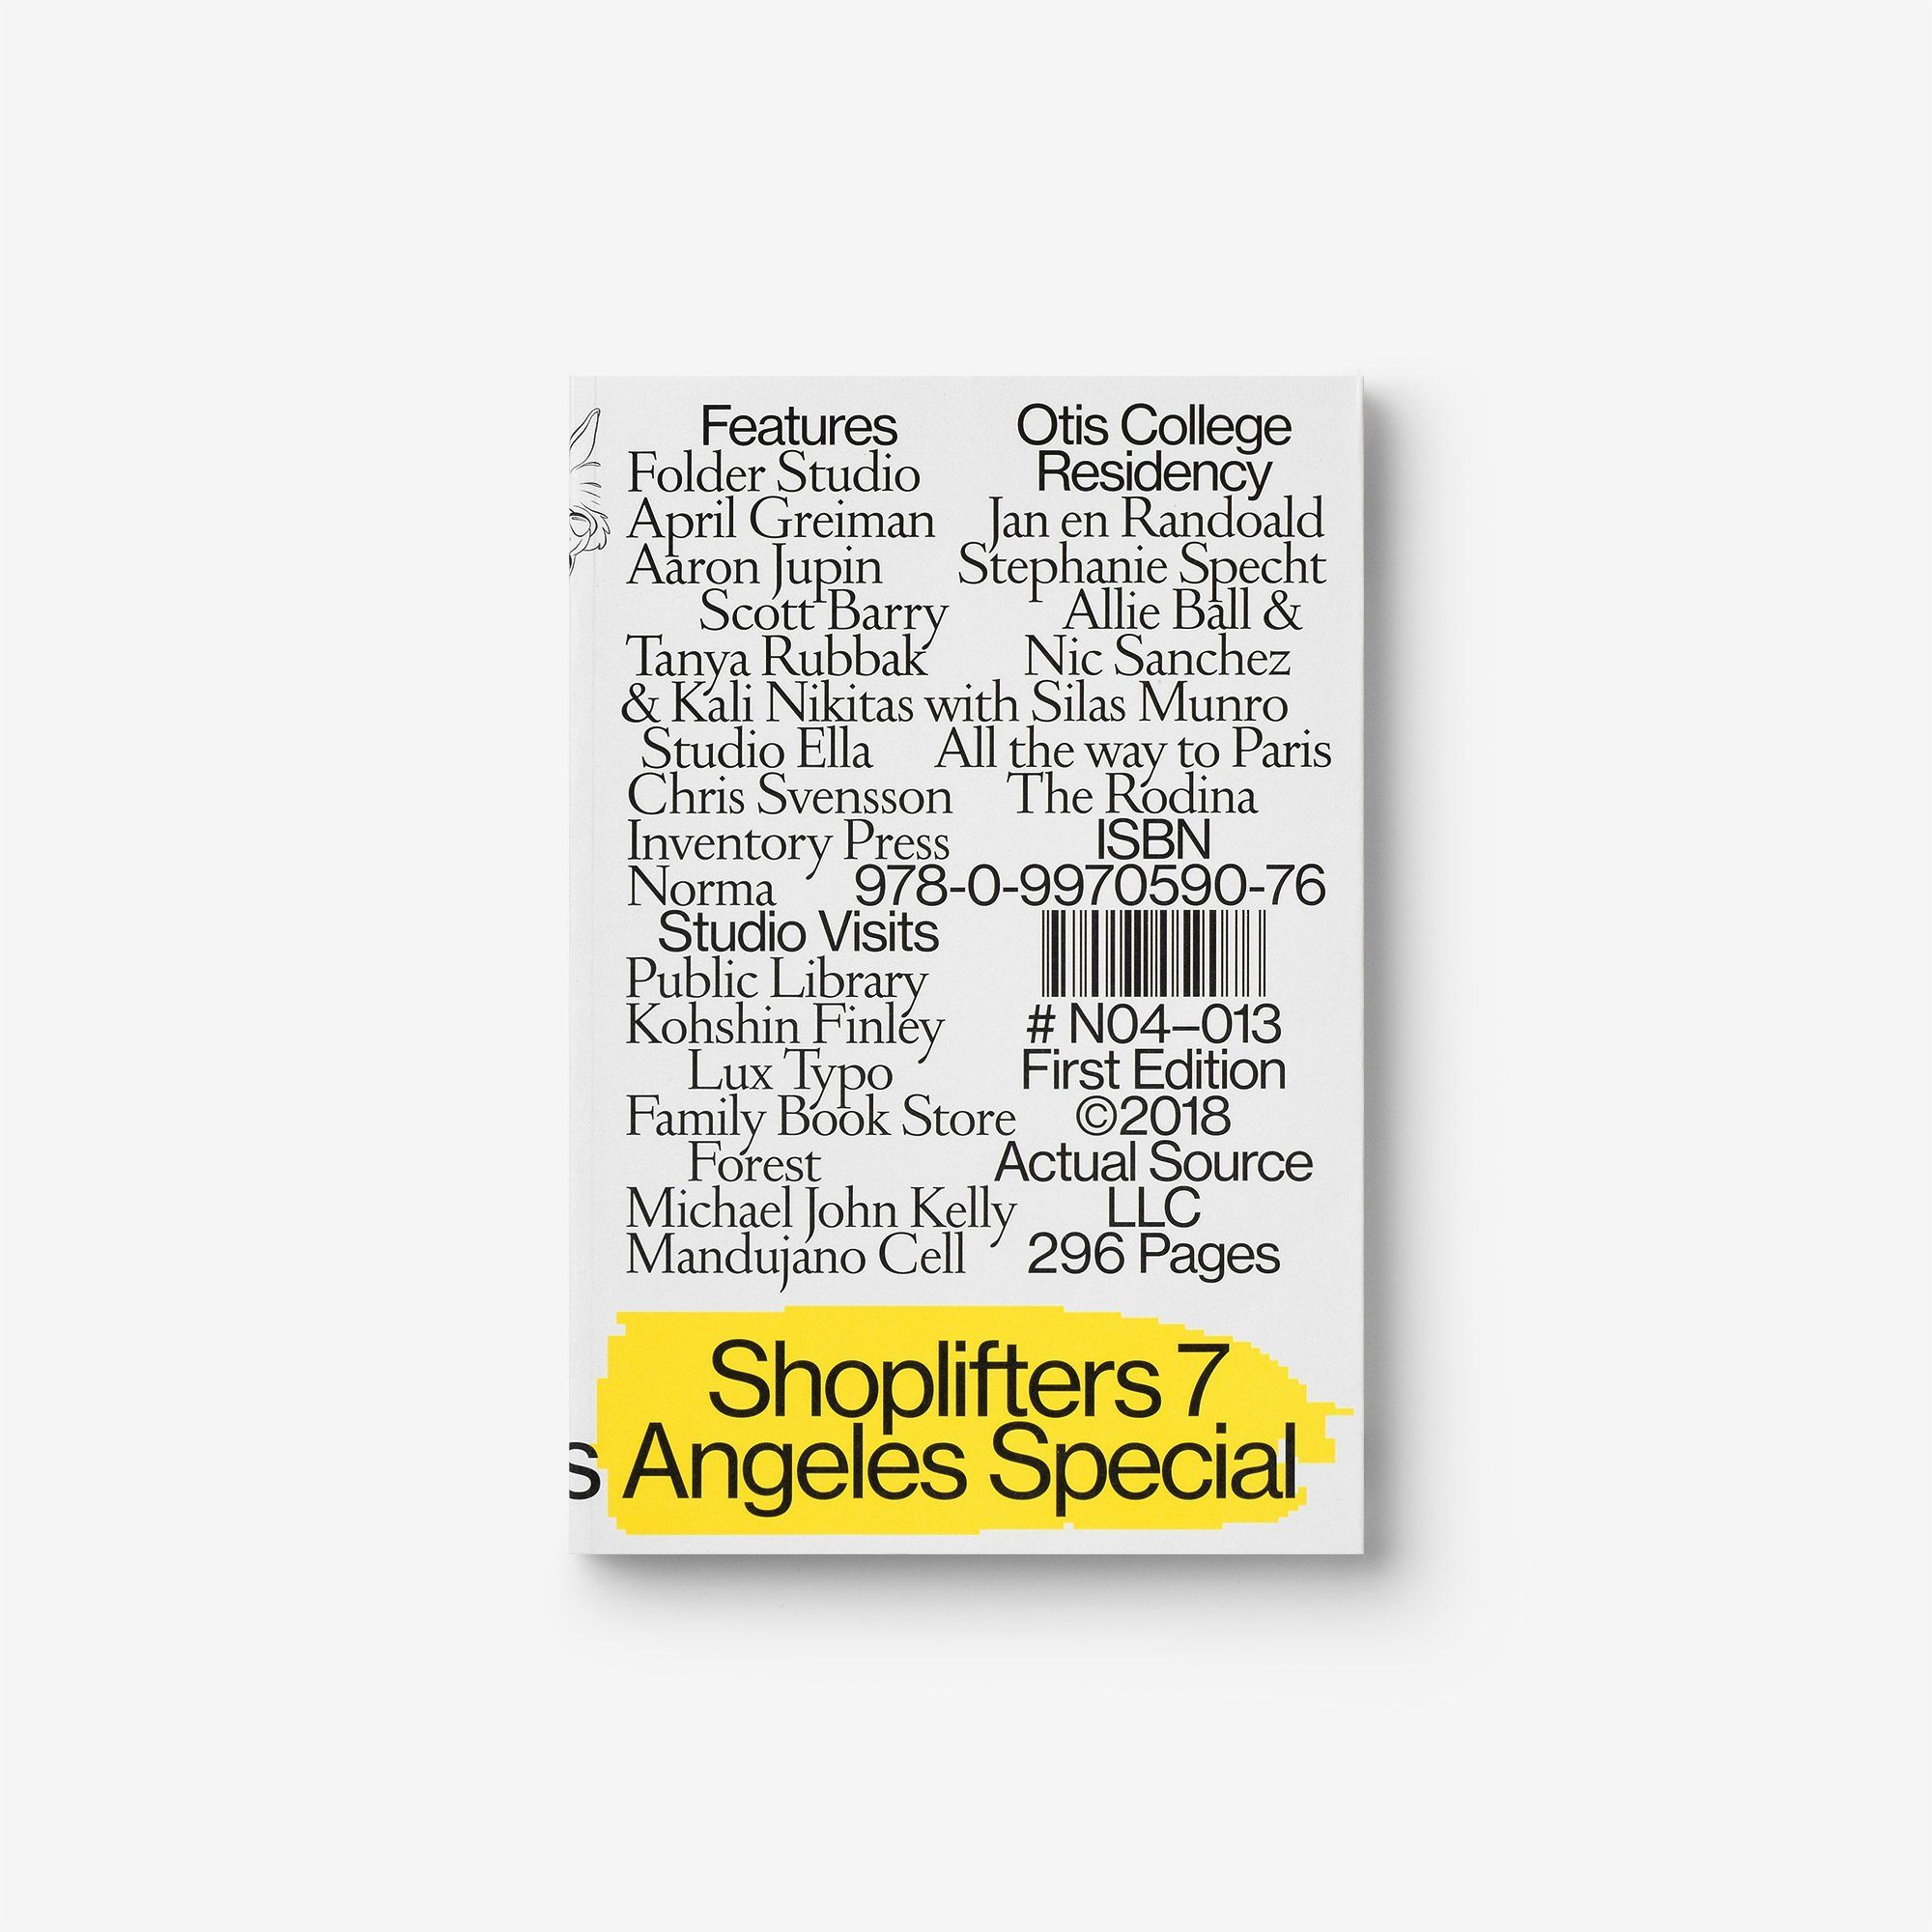 Shoplifters Issue 7 Los Angeles Special April Greiman Otis College Book Design